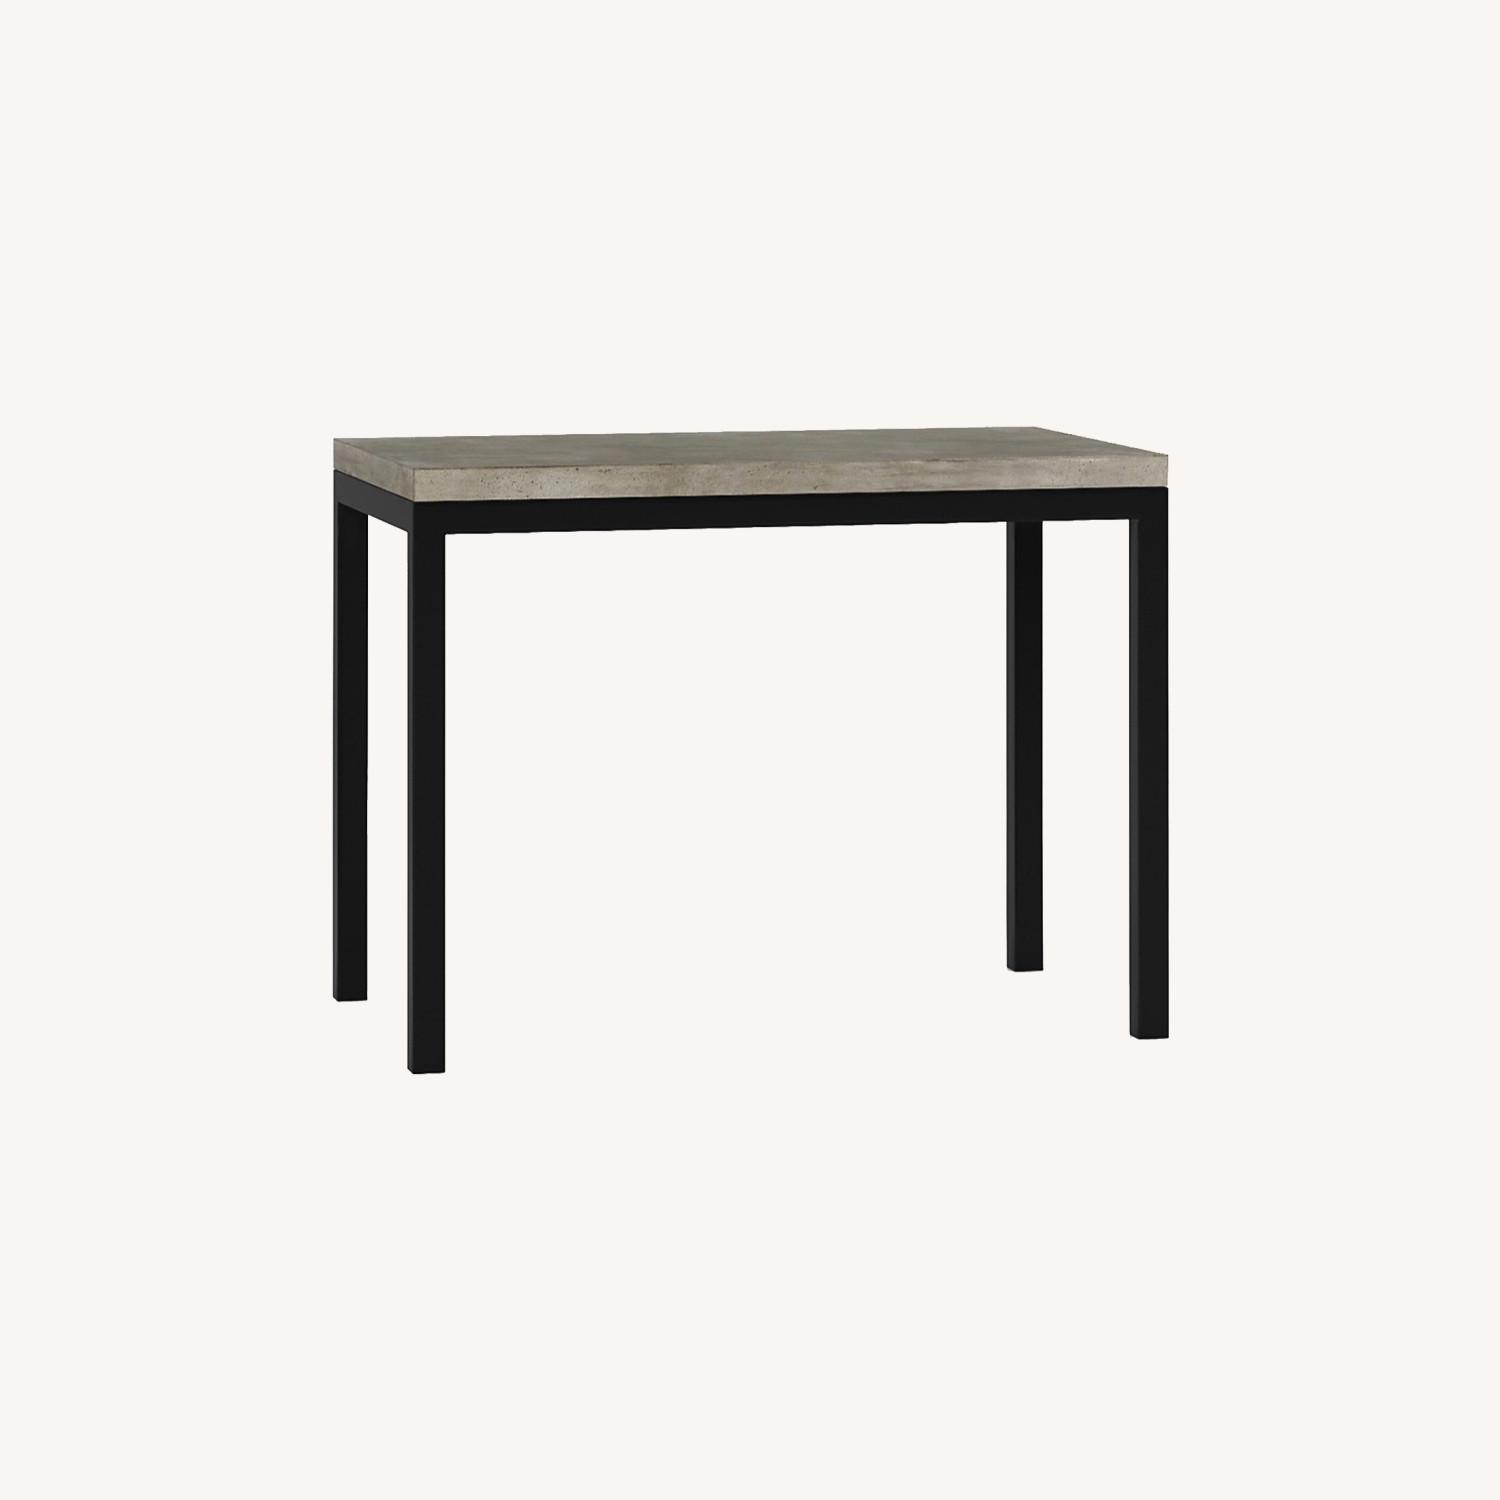 Crate & Barrel Concrete High Dining Table - image-0